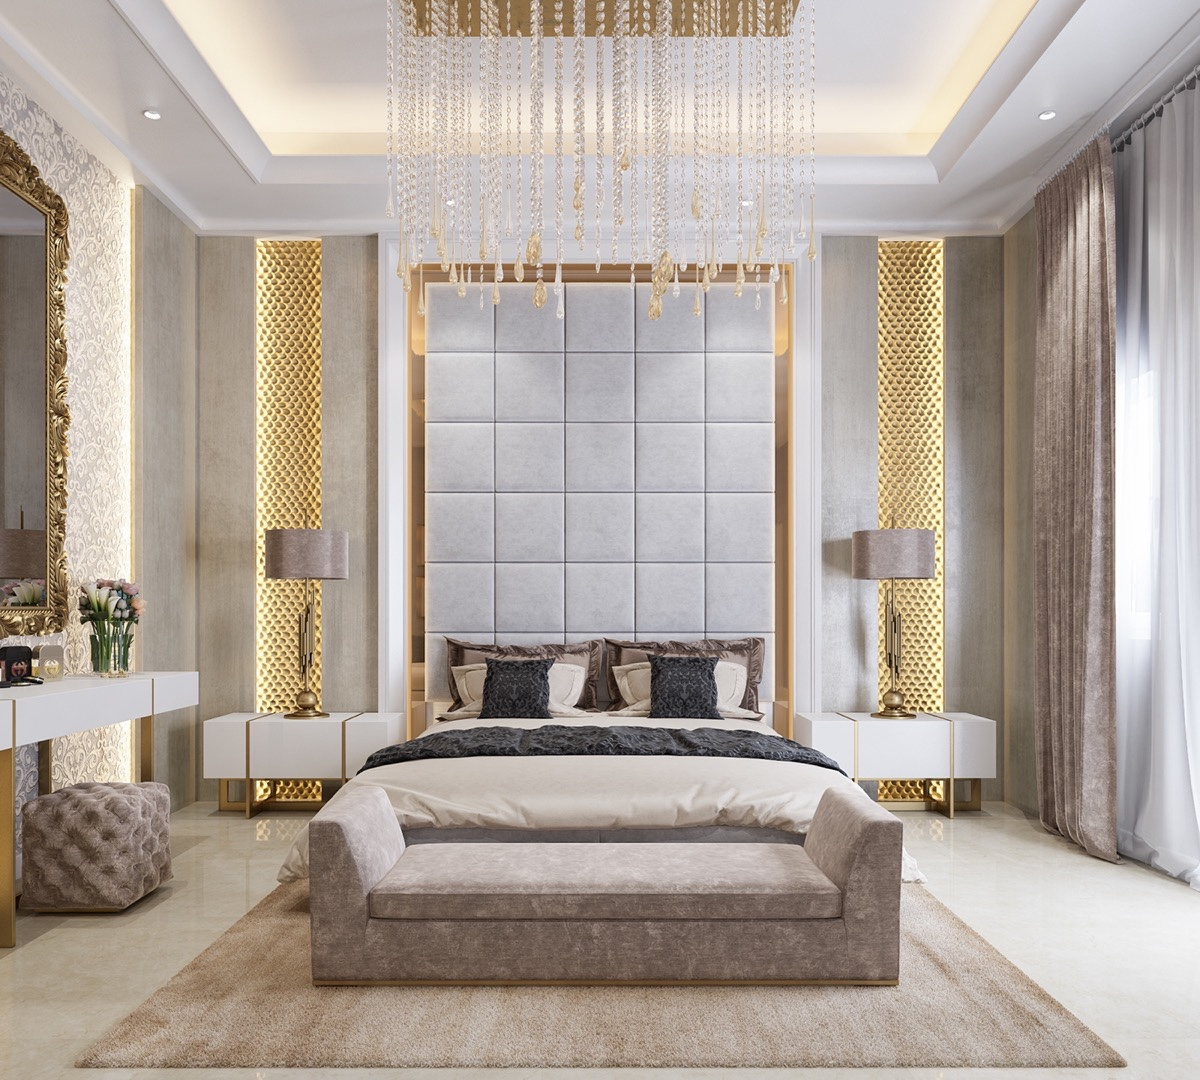 3 Kind Of Elegant Bedroom Design Ideas Includes a Brilliant Decor That Very Suitable To Apply ...